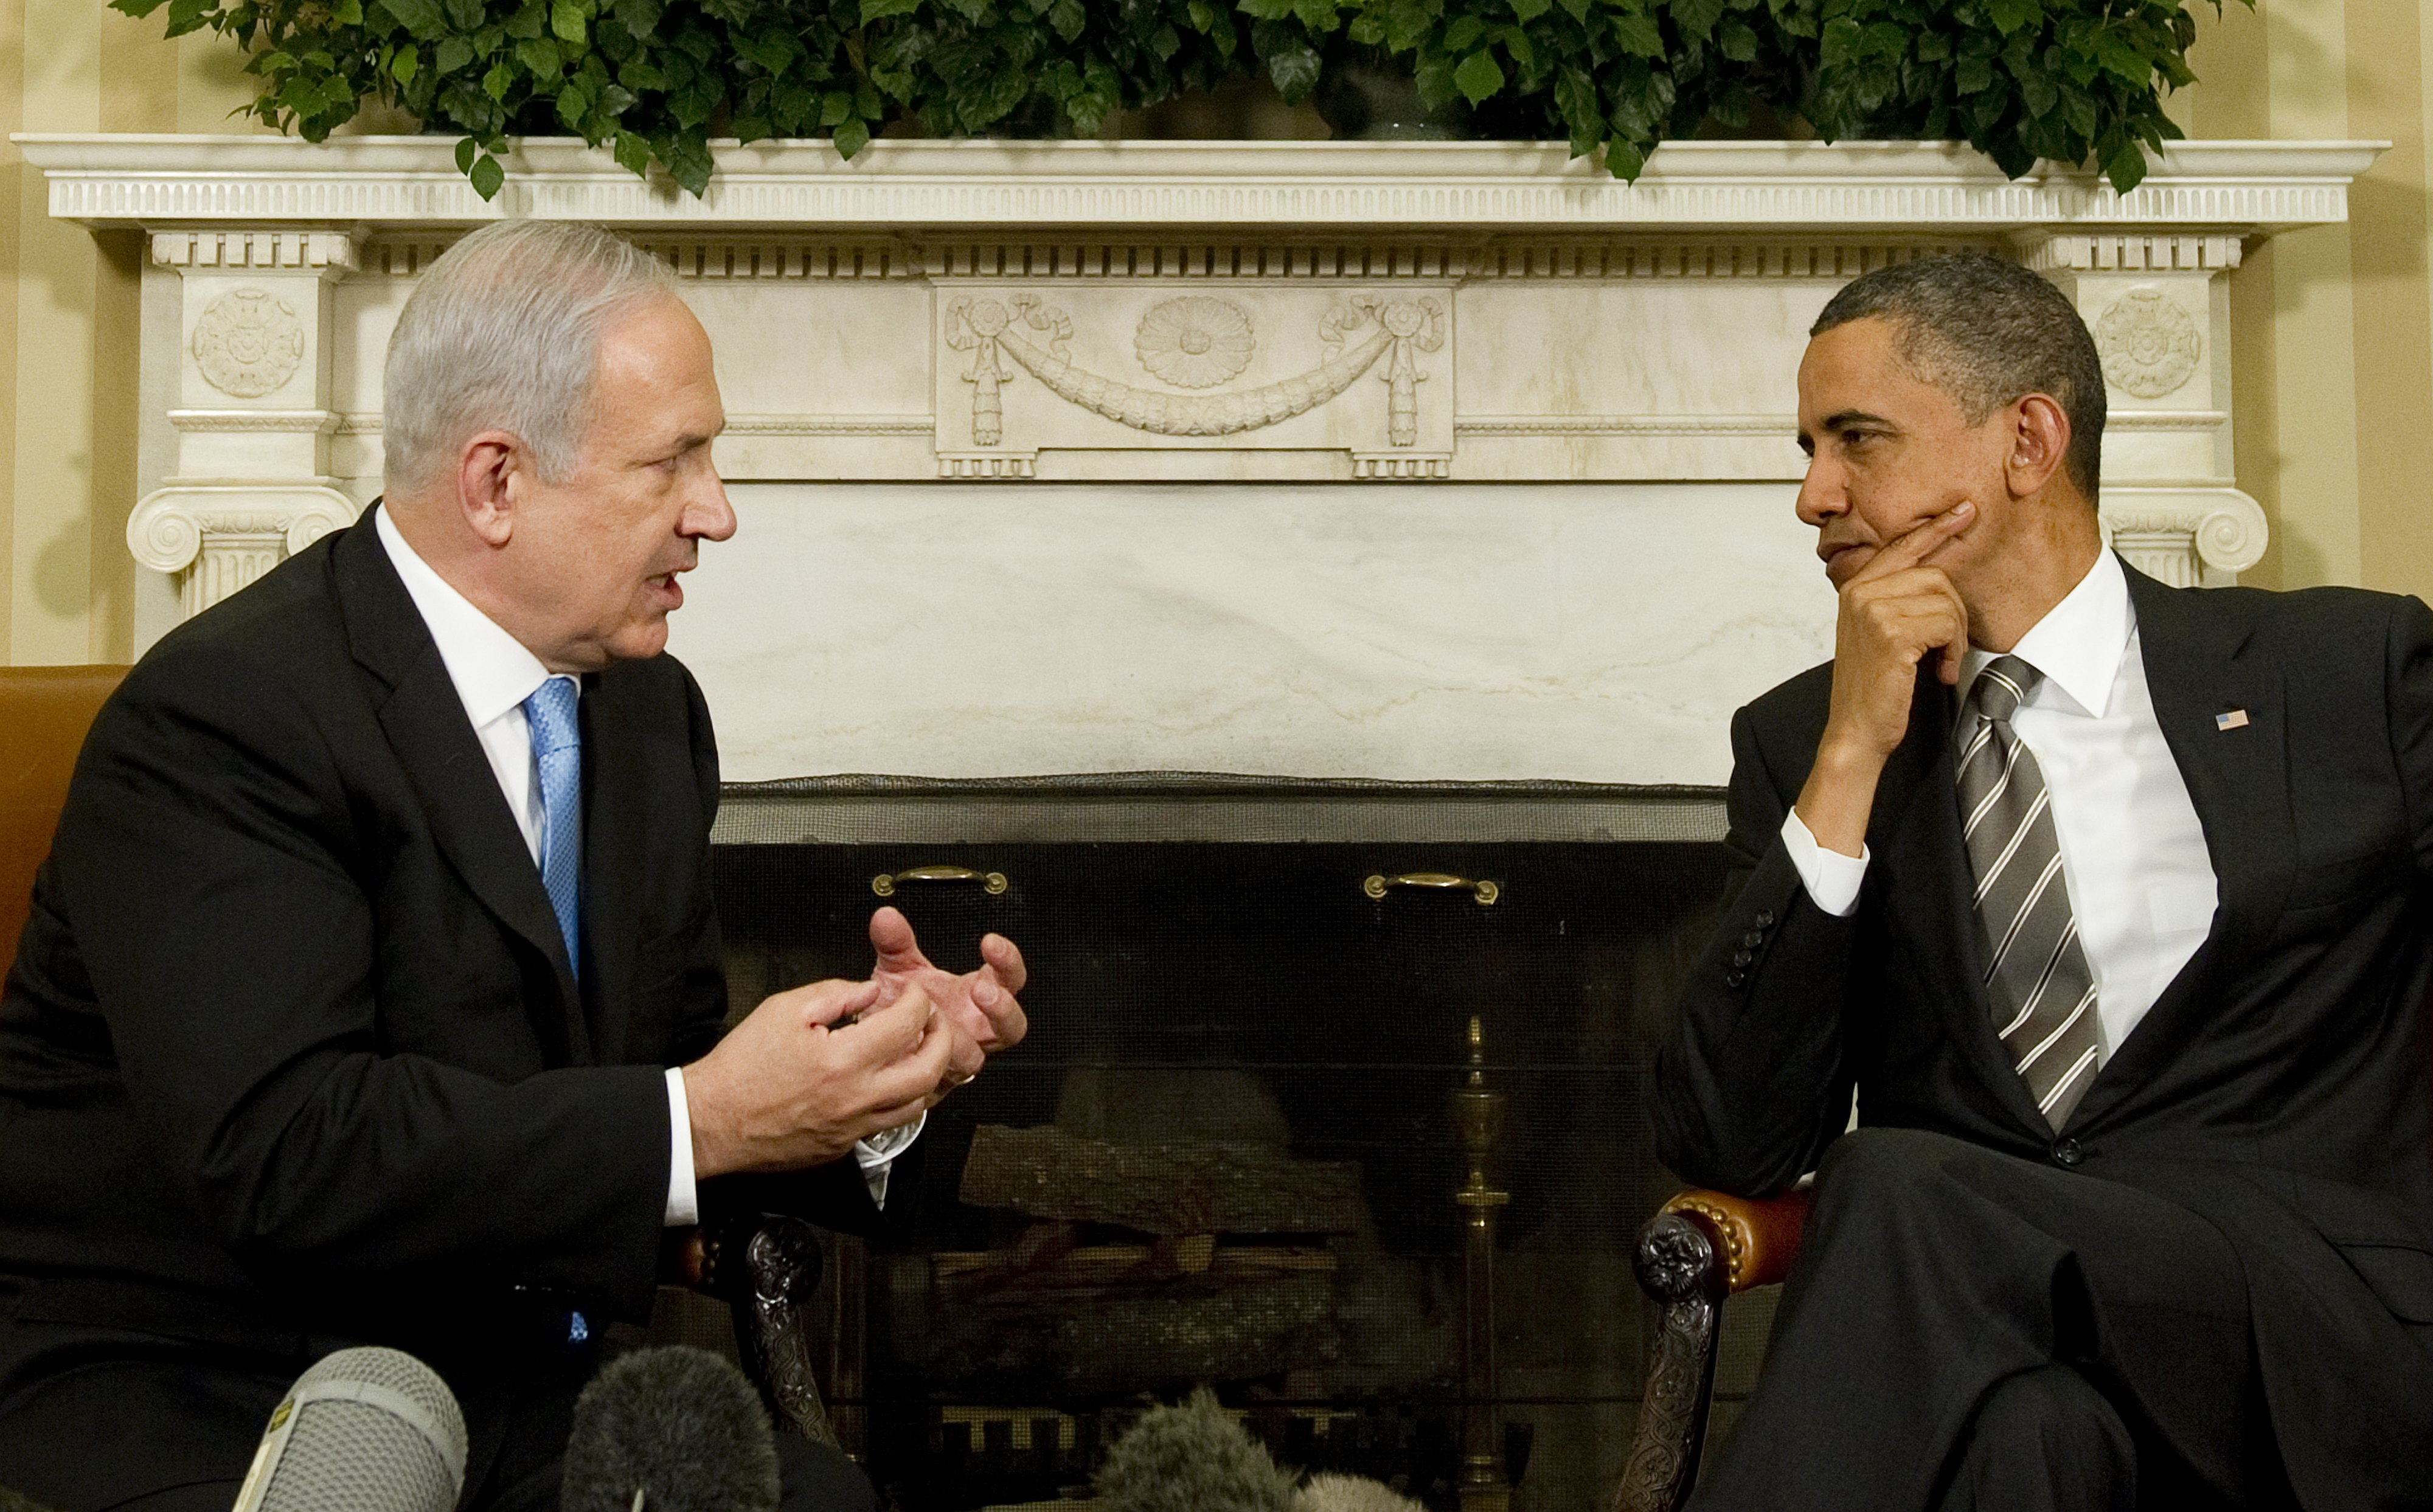 US President Barack Obama (R) meets with Israeli Prime Minister Benjamin Netanyahu in the Oval Office of the White House in Washington, DC, May 20, 2011. Building tensions between the two leaders have been six years in the making. Photo by Jim Watson/AFP/Getty Images.